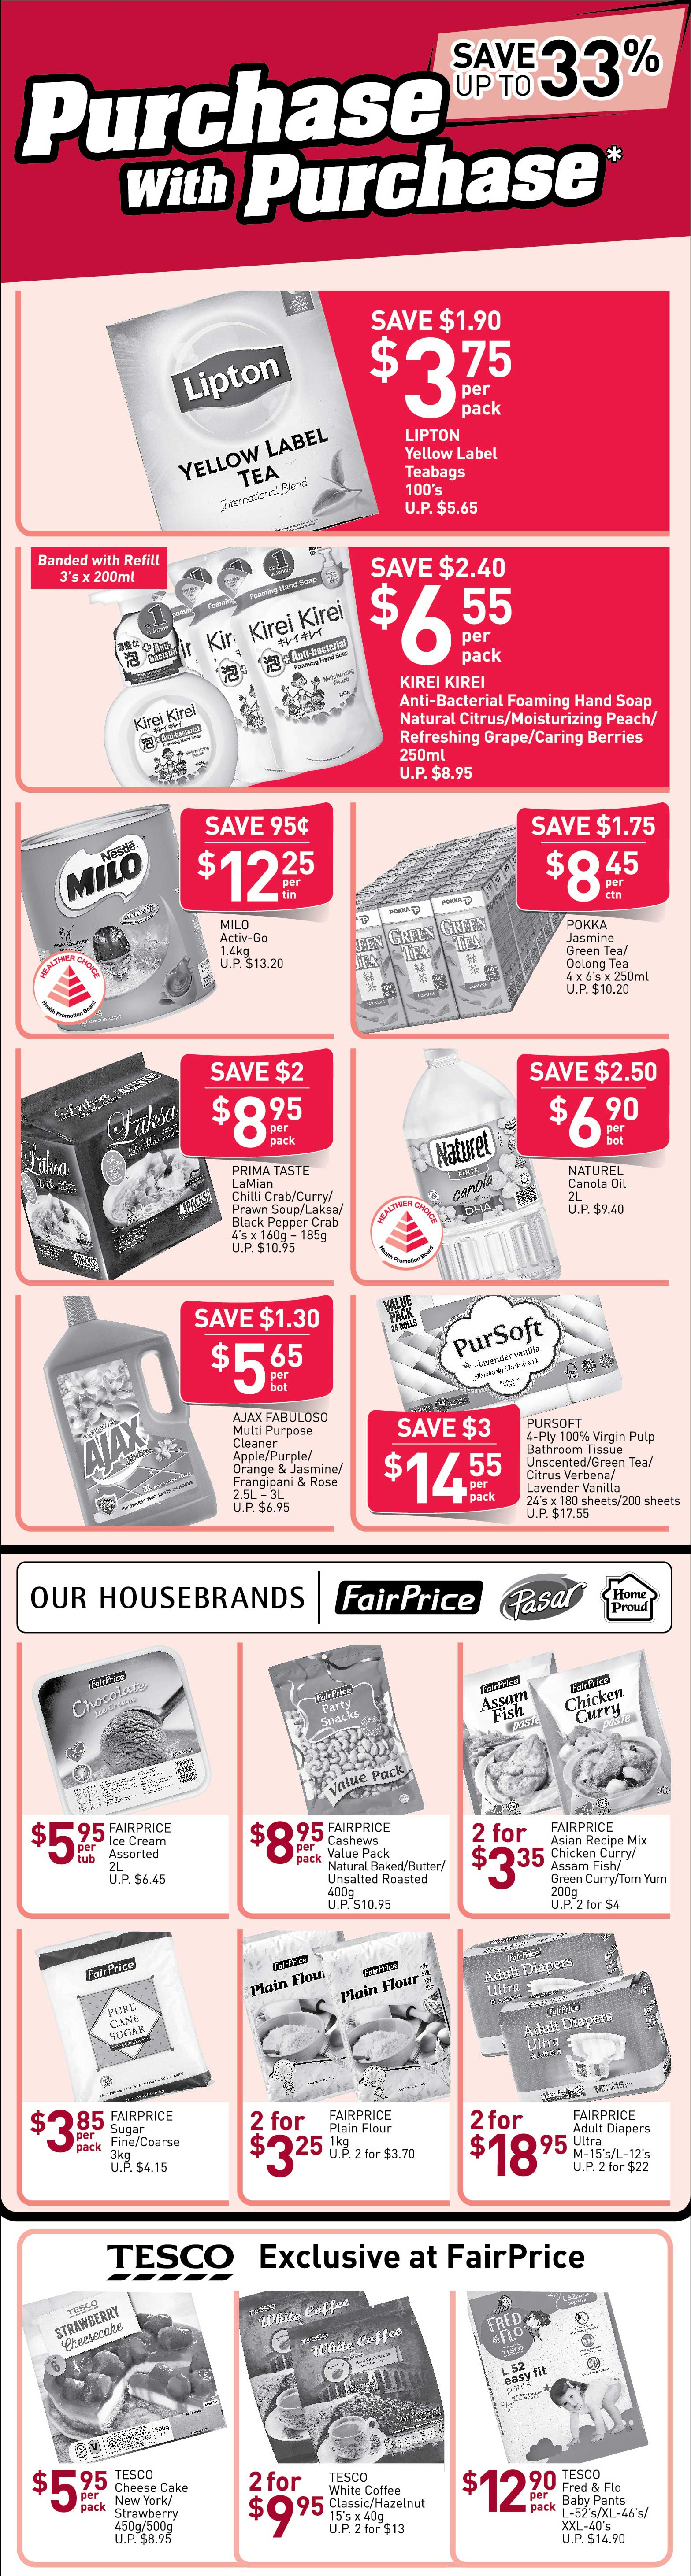 NTUC FairPrice Singapore Your Weekly Saver Promotion 13-19 Jun 2019 | Why Not Deals 1 & Promotions